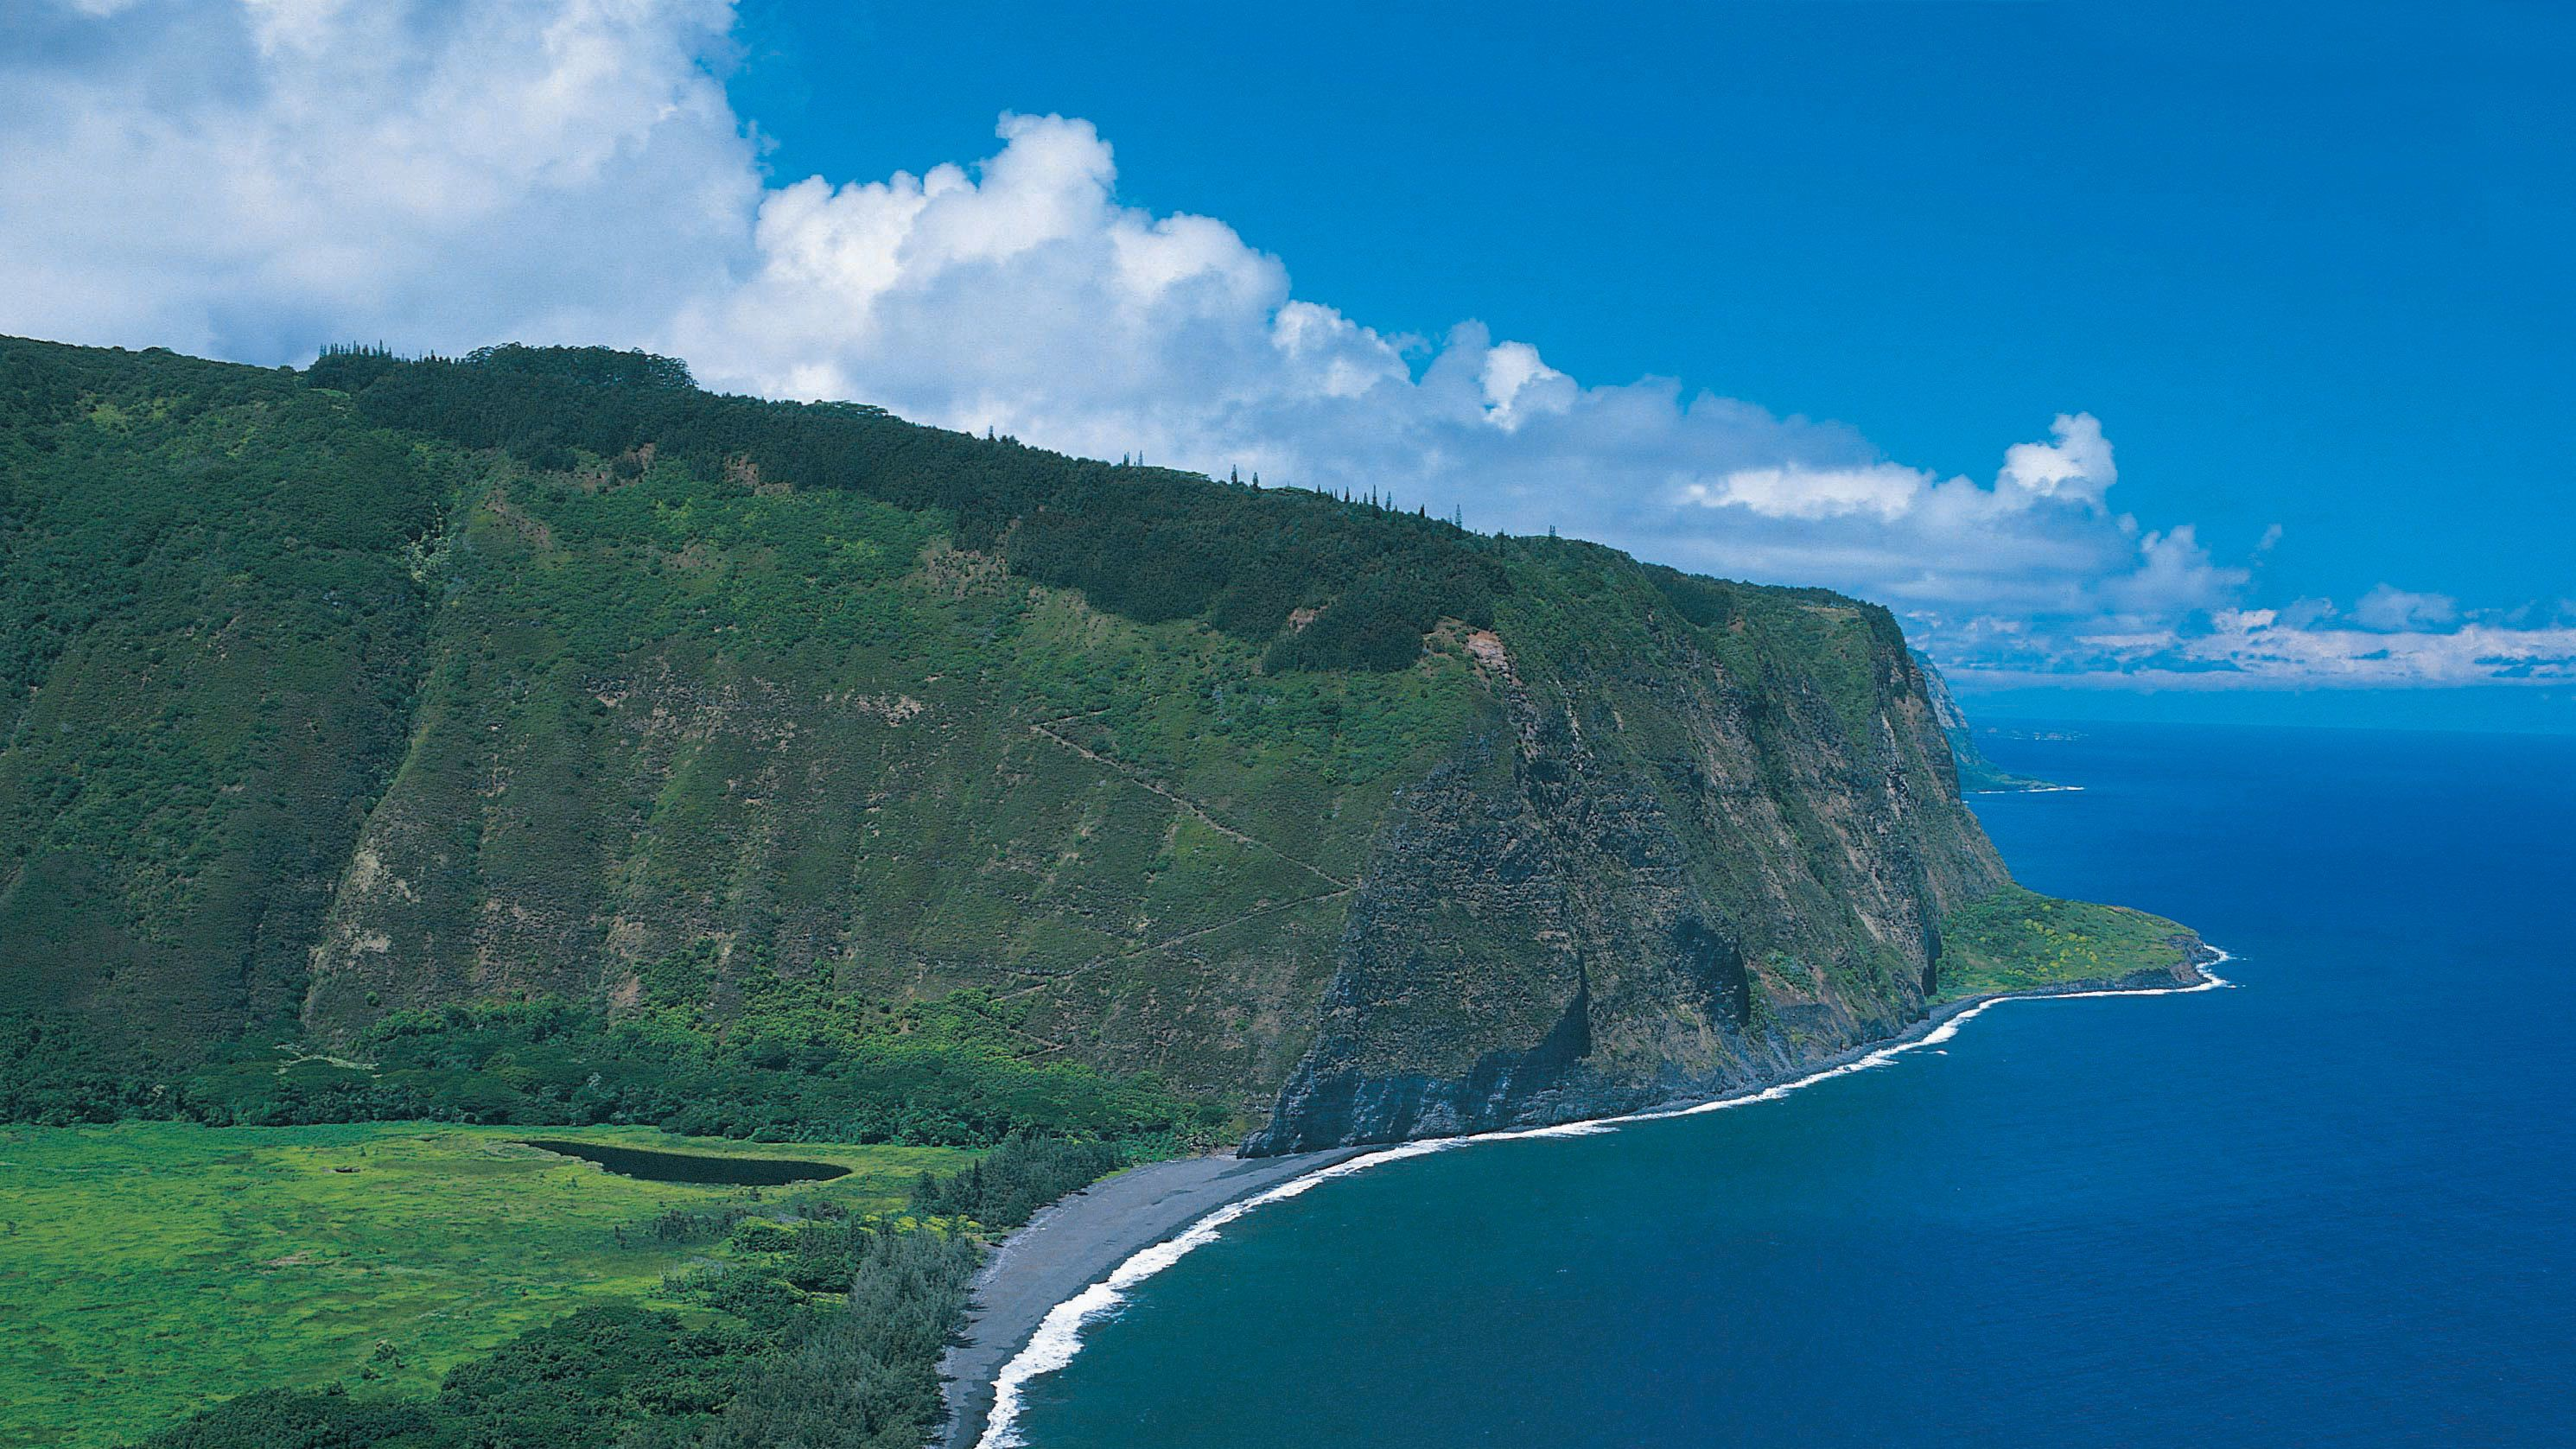 Aerial of cliff and flat grass land along the shore of the Big Island in Hawaii